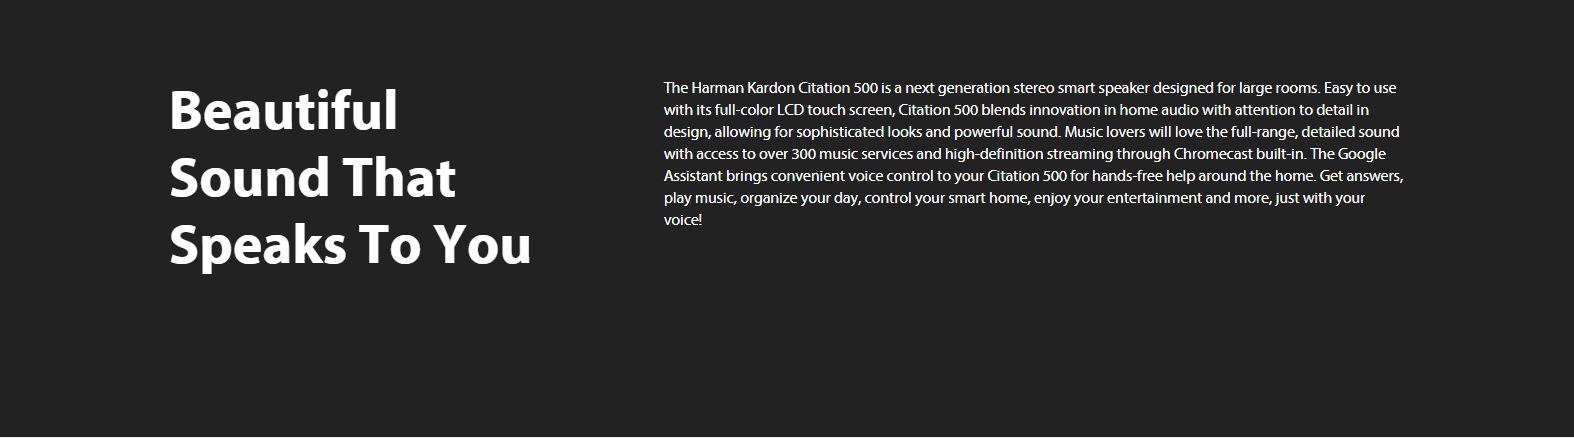 HARMAN/ KARDON CITATION 500